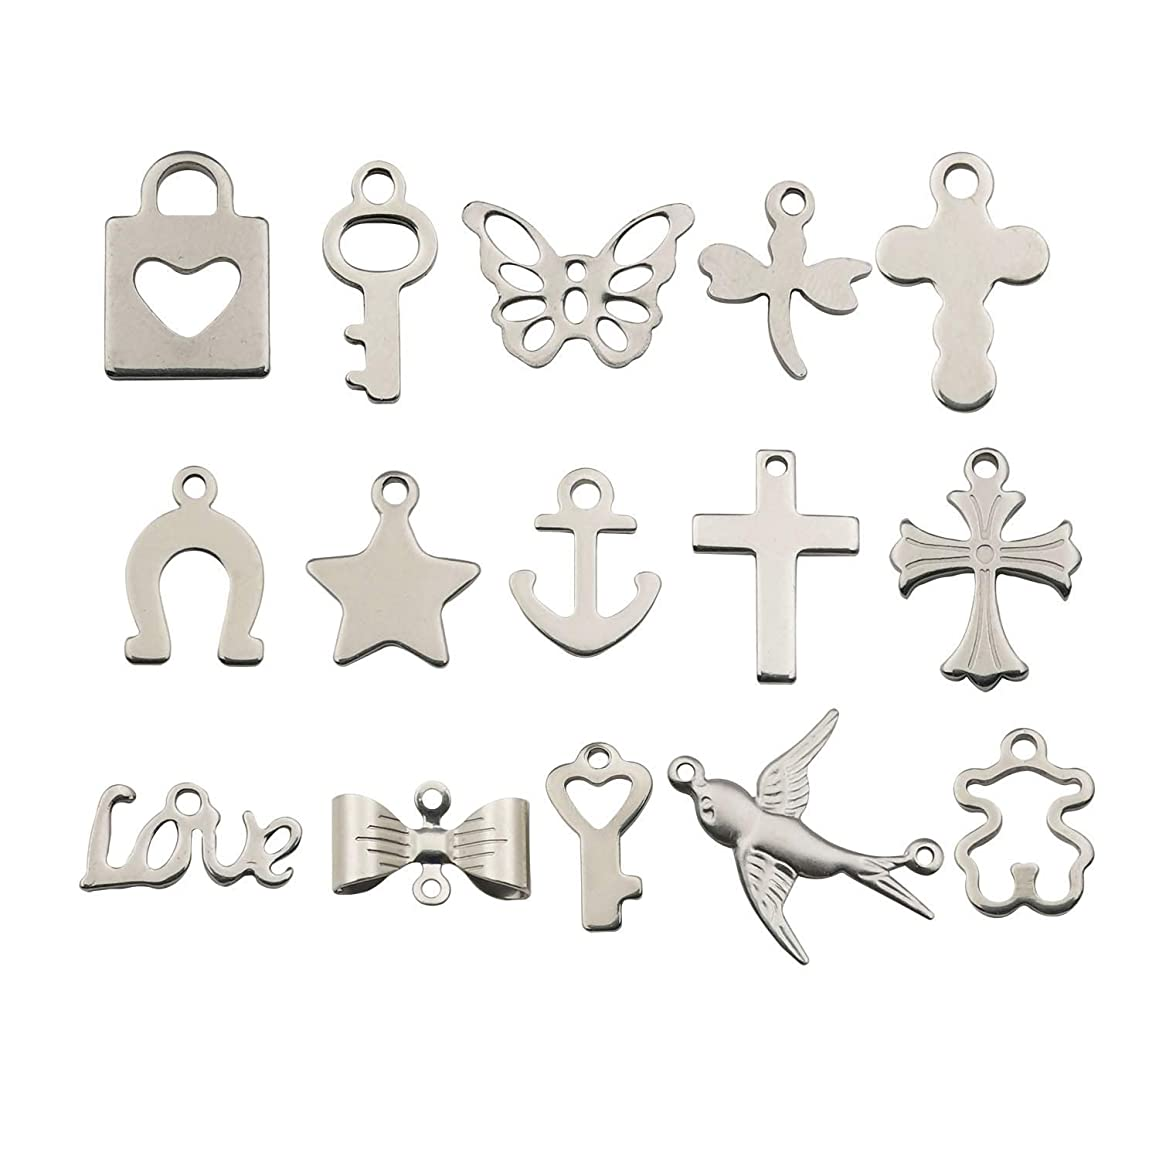 Stainless Steel 120pcs Mixed Bird Key Star Cross Charms Pendant for Jewelry Making DIY Findings Necklace Bracelet Earrings Parts M246